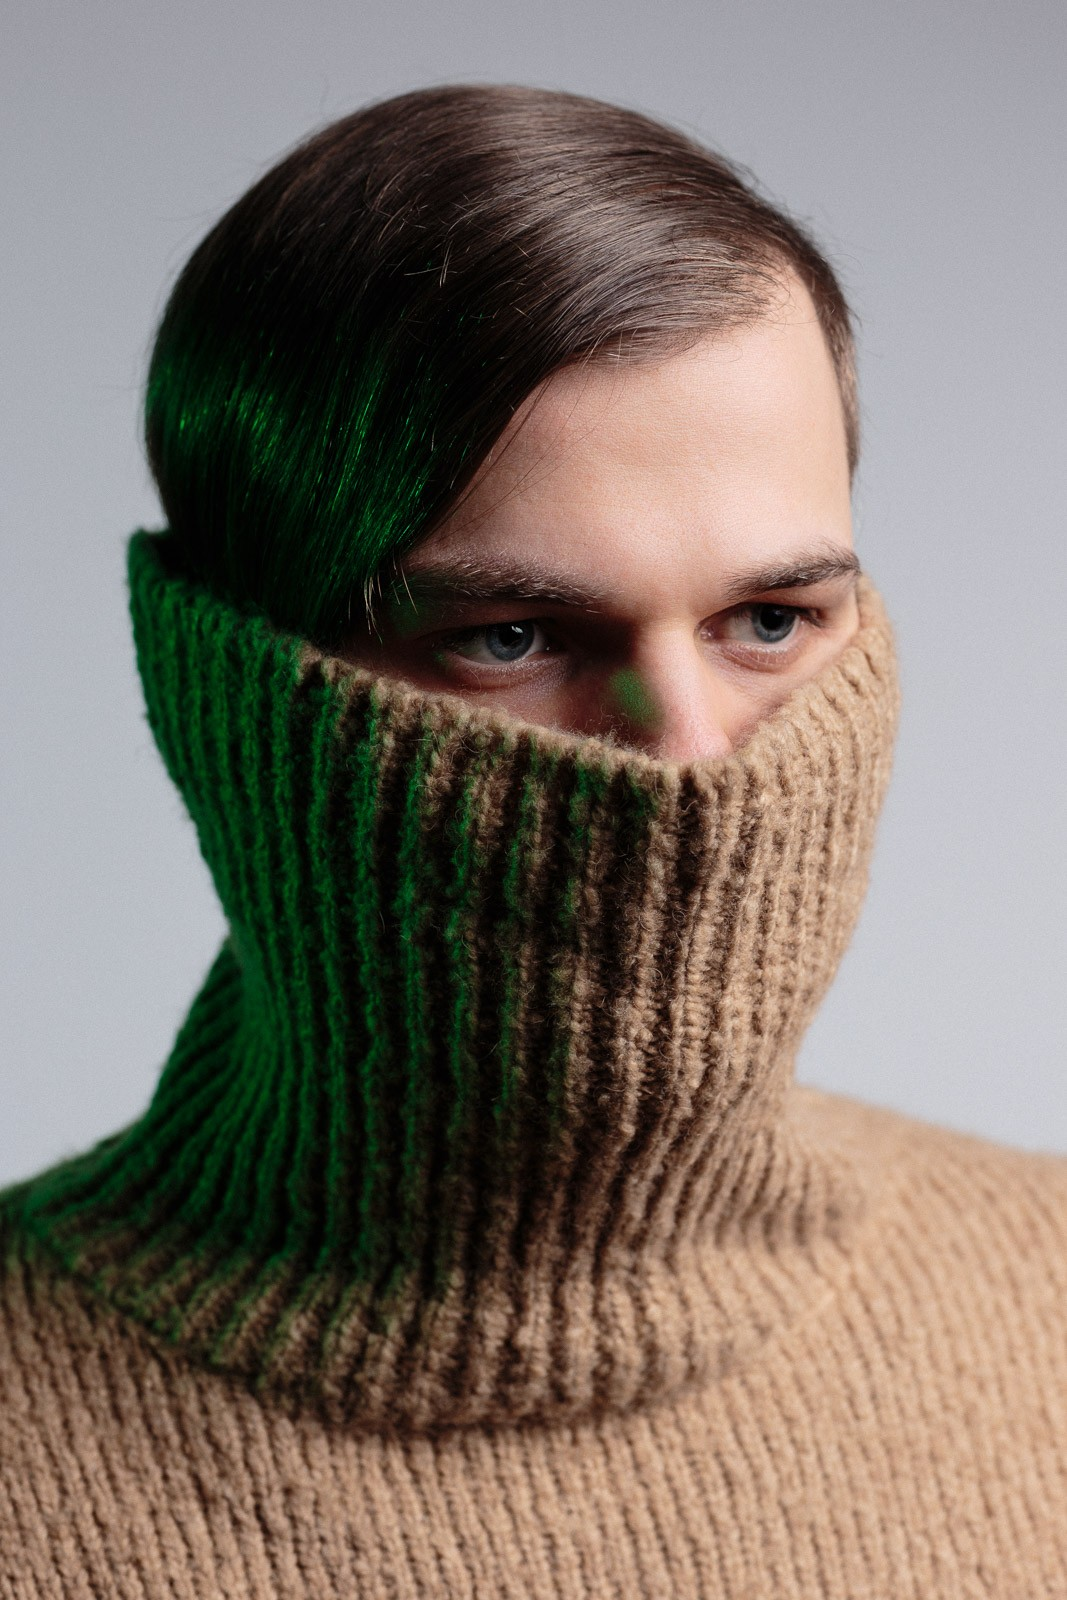 young man studio portrait wearing brown turtleneck